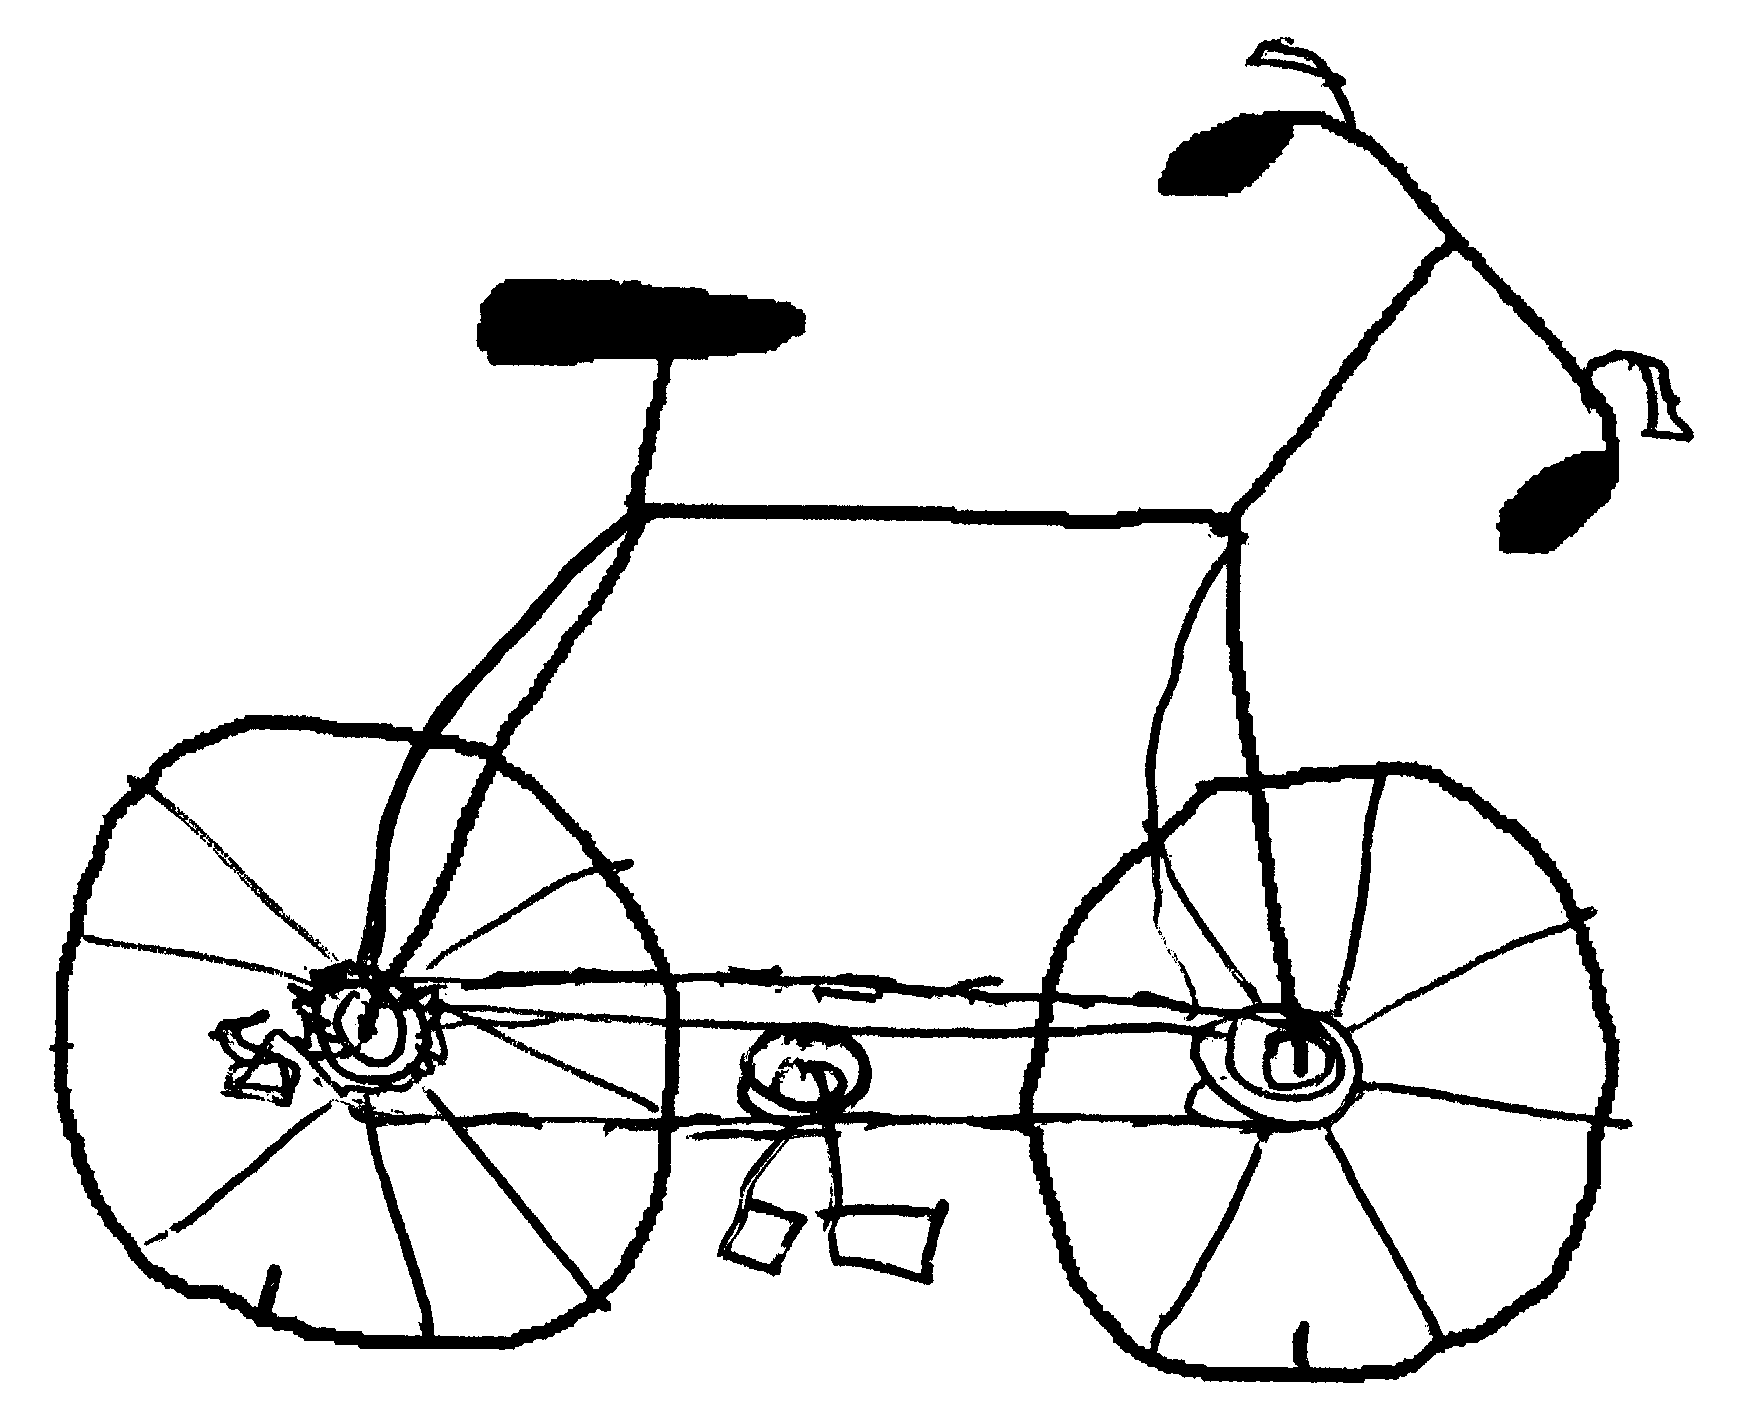 bicycle sketch dave atkinson the science of cycology can you draw a sketch bicycle